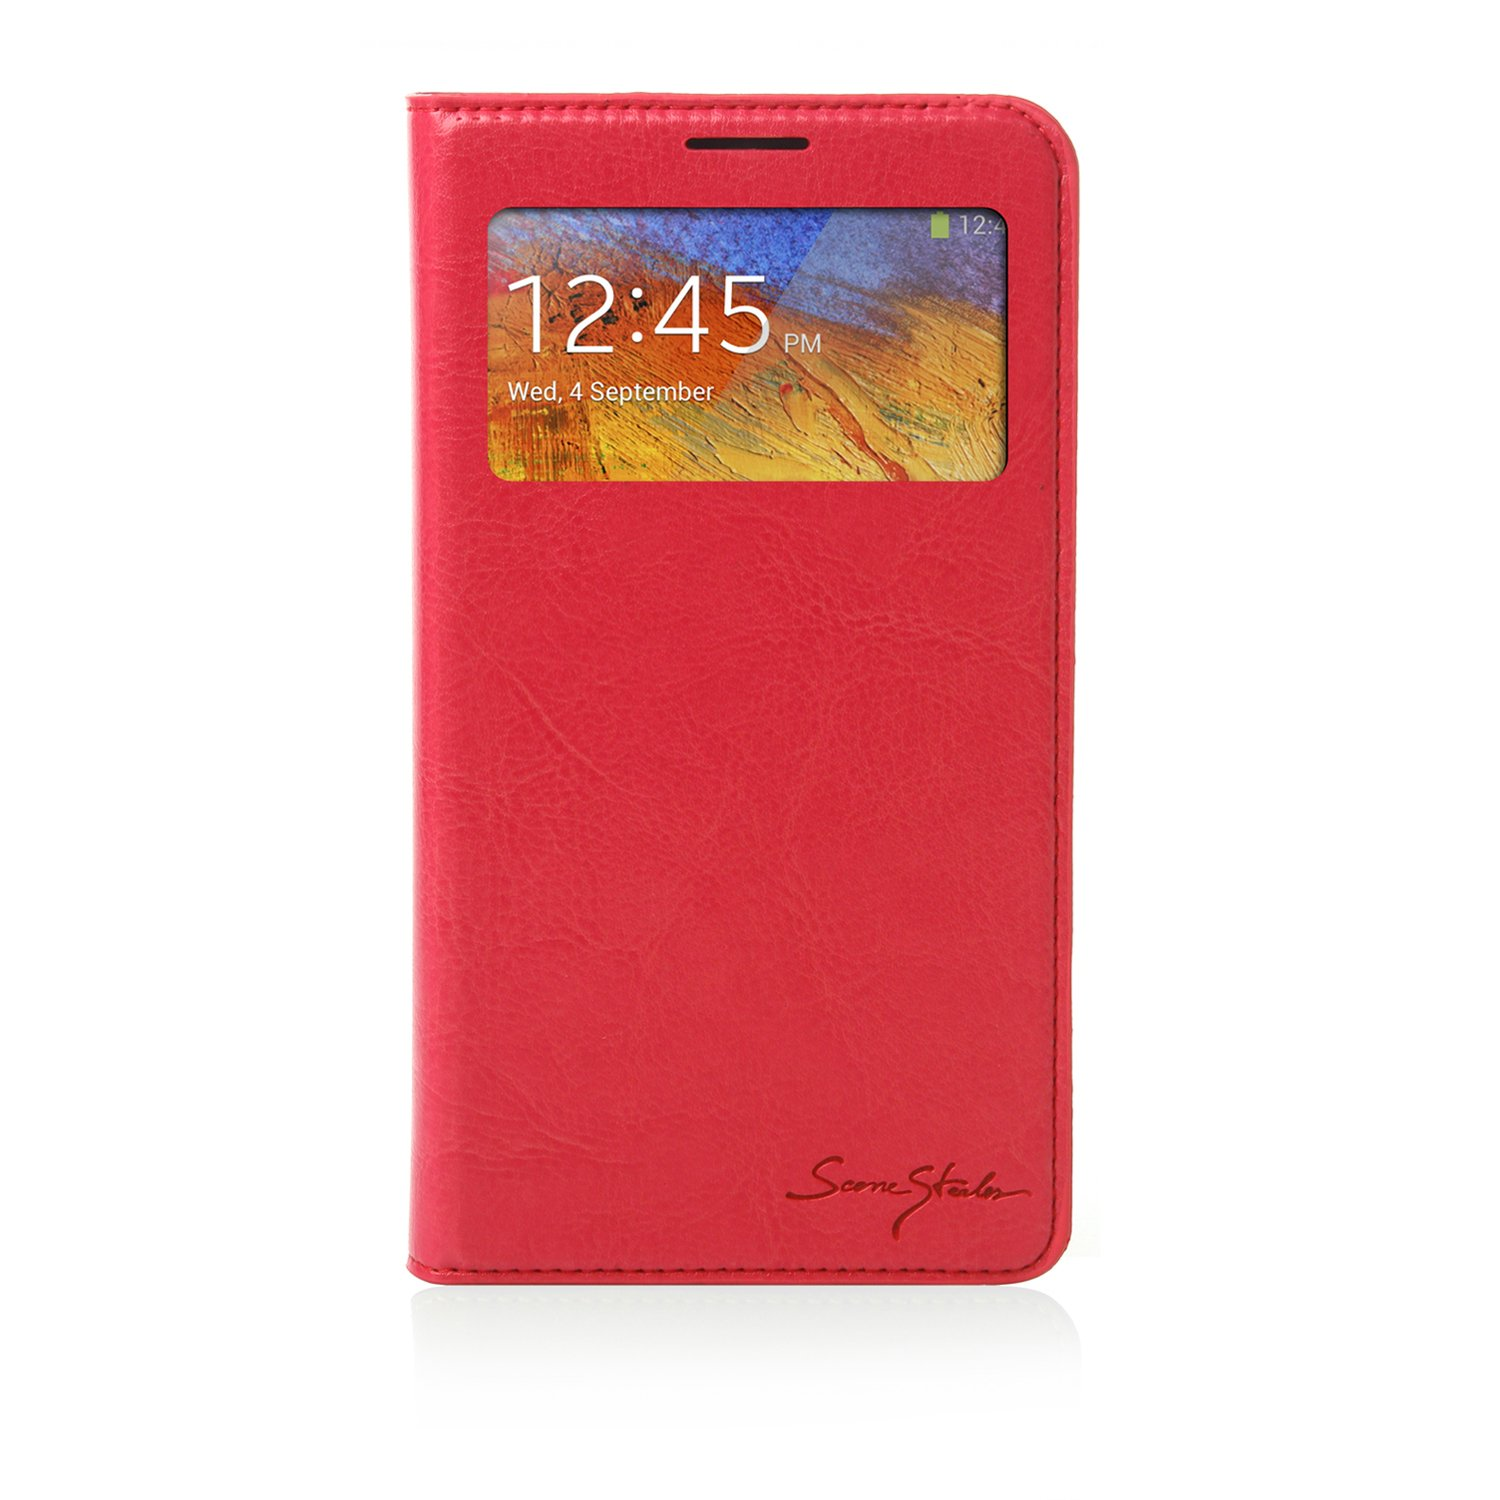 Samsung Galaxy Note 3 Case Italian Standing Window View - Red